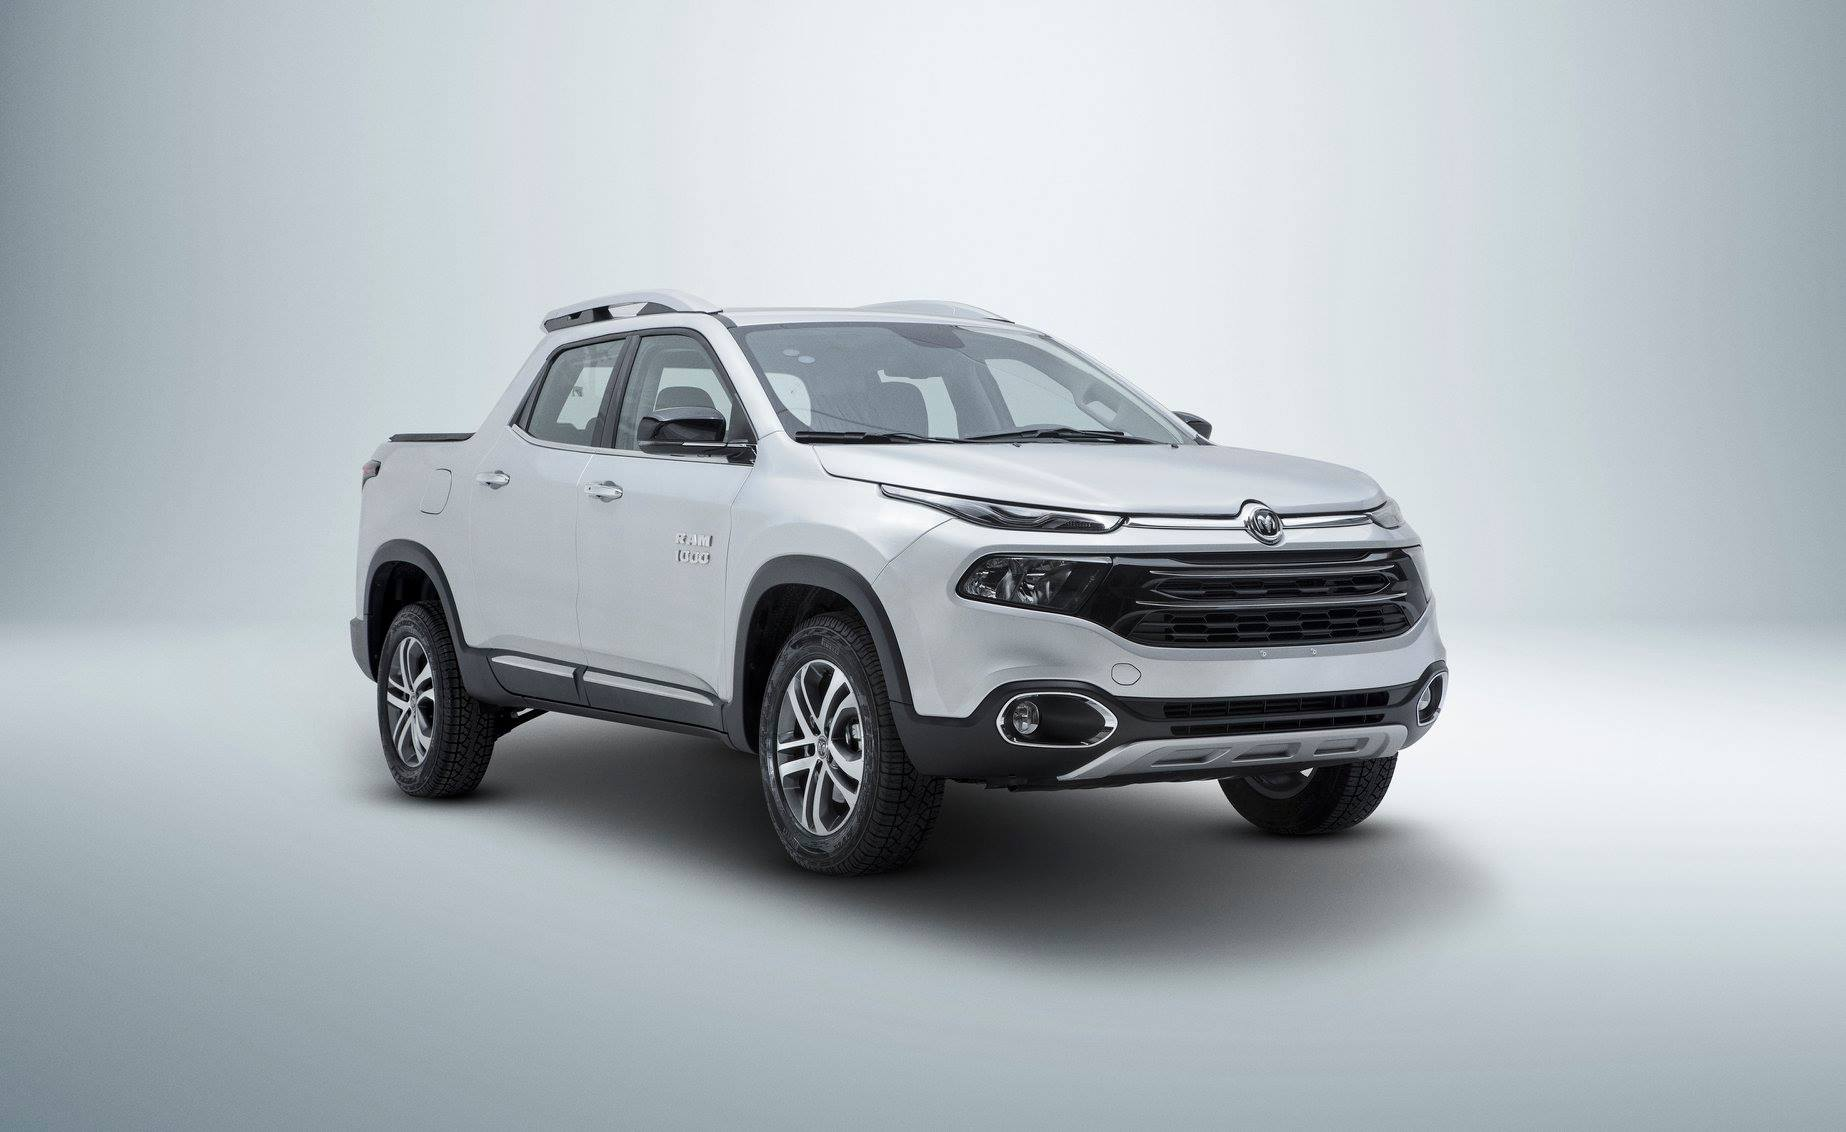 2020 Fiat Toro Release Date, Specs, Price, And Design >> Meet The New Ram 1000 Pickup For The Colombian Market Mopar Insiders